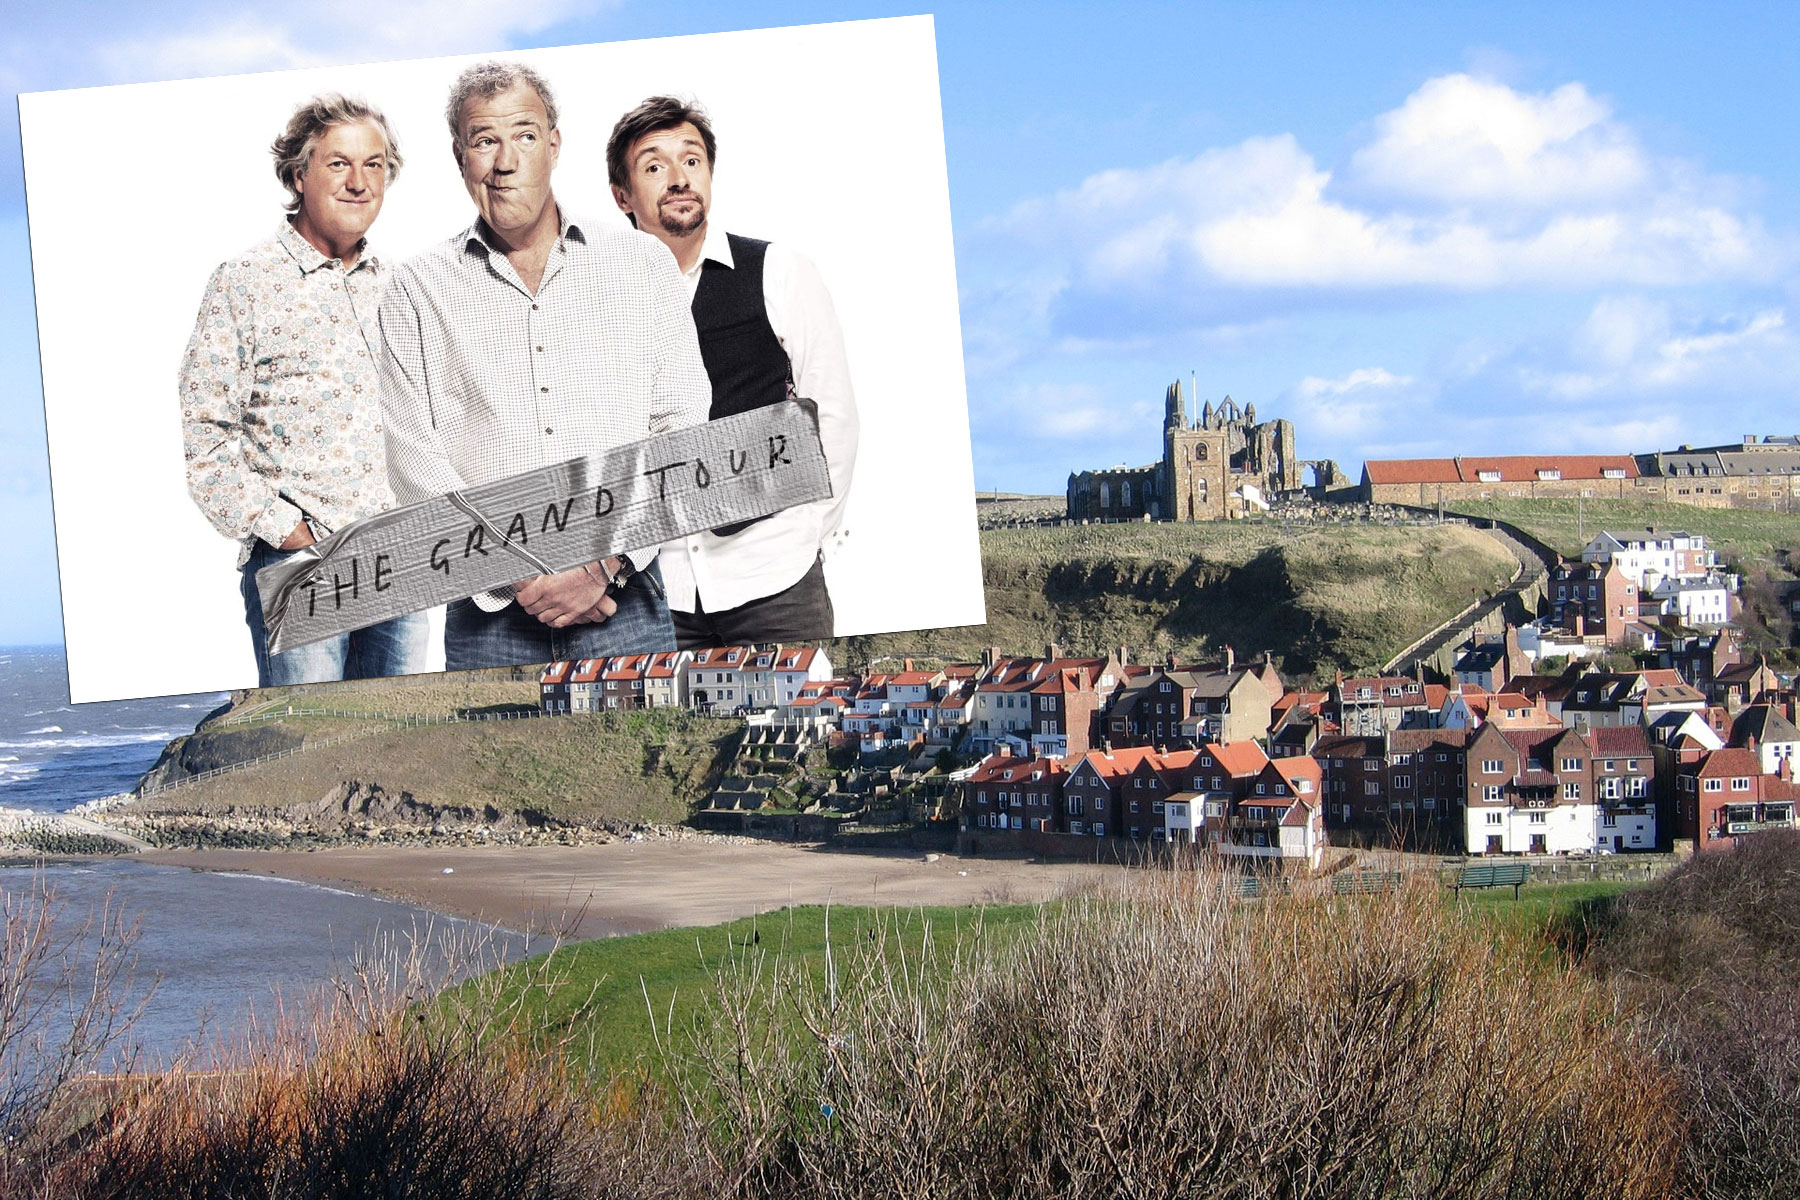 The Grand Tour: fans from more than 100 countries want to visit Whitby